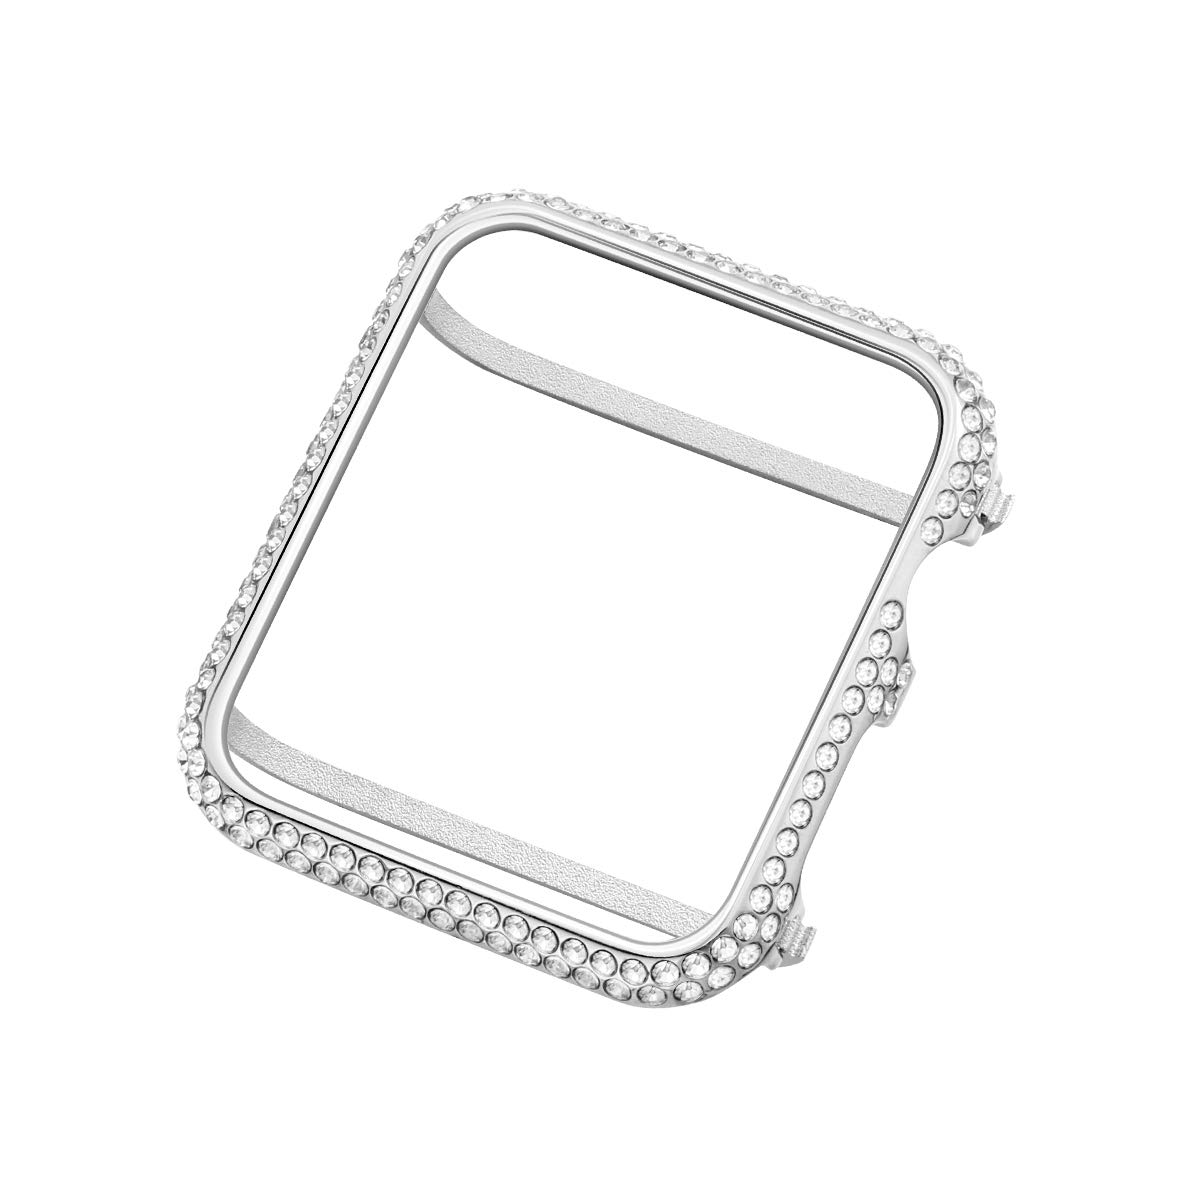 UKCOCO Compatible Apple Watch 38mm Diamond Case, Aluminum iWatch Bezel Metal Cover Crystal Rhinestone Protective Protector Cover for iWatch Series 1/2/3 Sport and Edition (38mm Silver) by UKCOCO